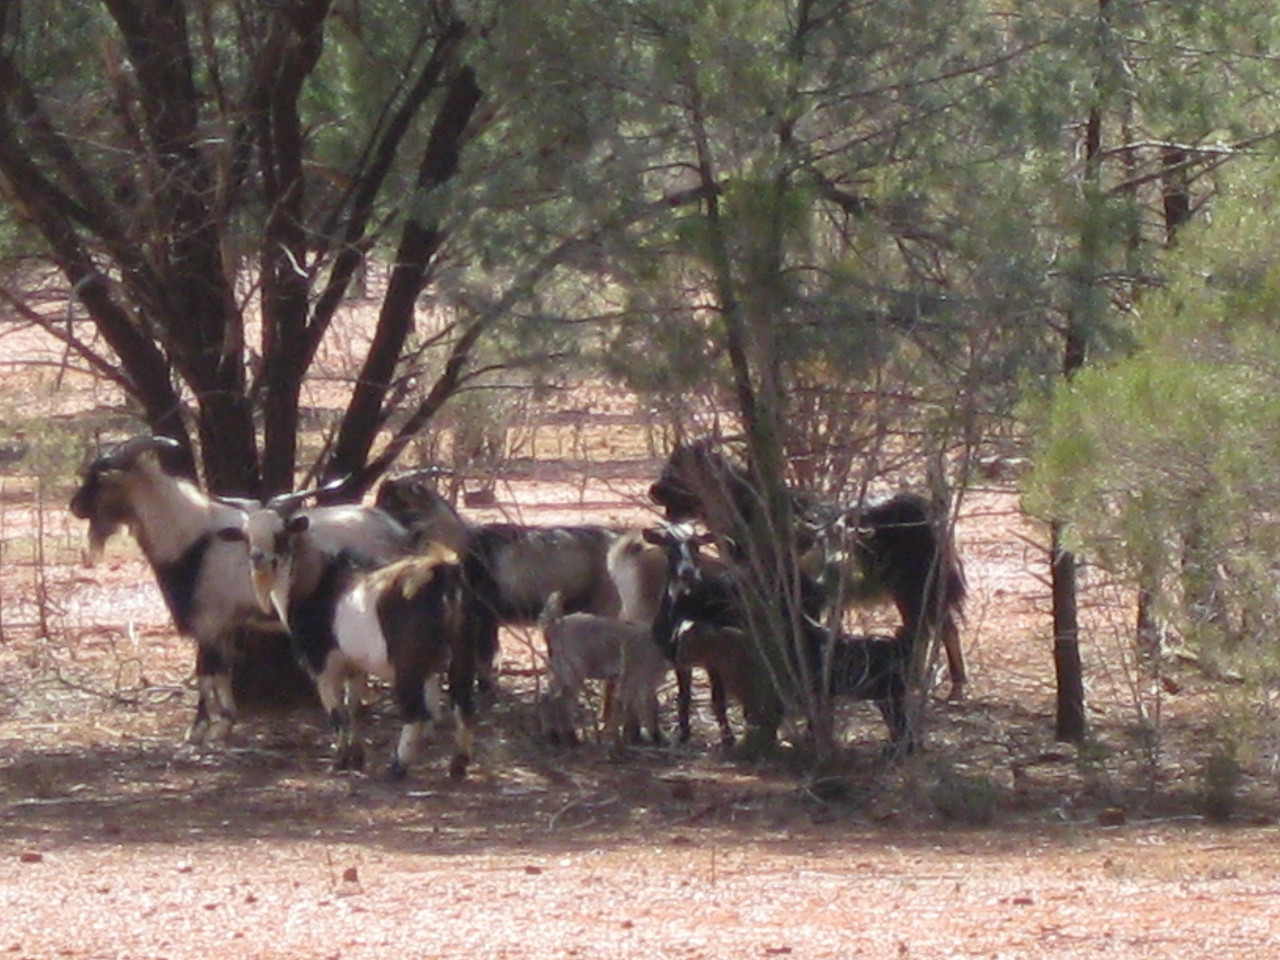 Plenty of feral goats out here.which used to be a real pest. Now however the Station owners round them up and sell them to a crowd who export them live to the Middle East. Good tucker.